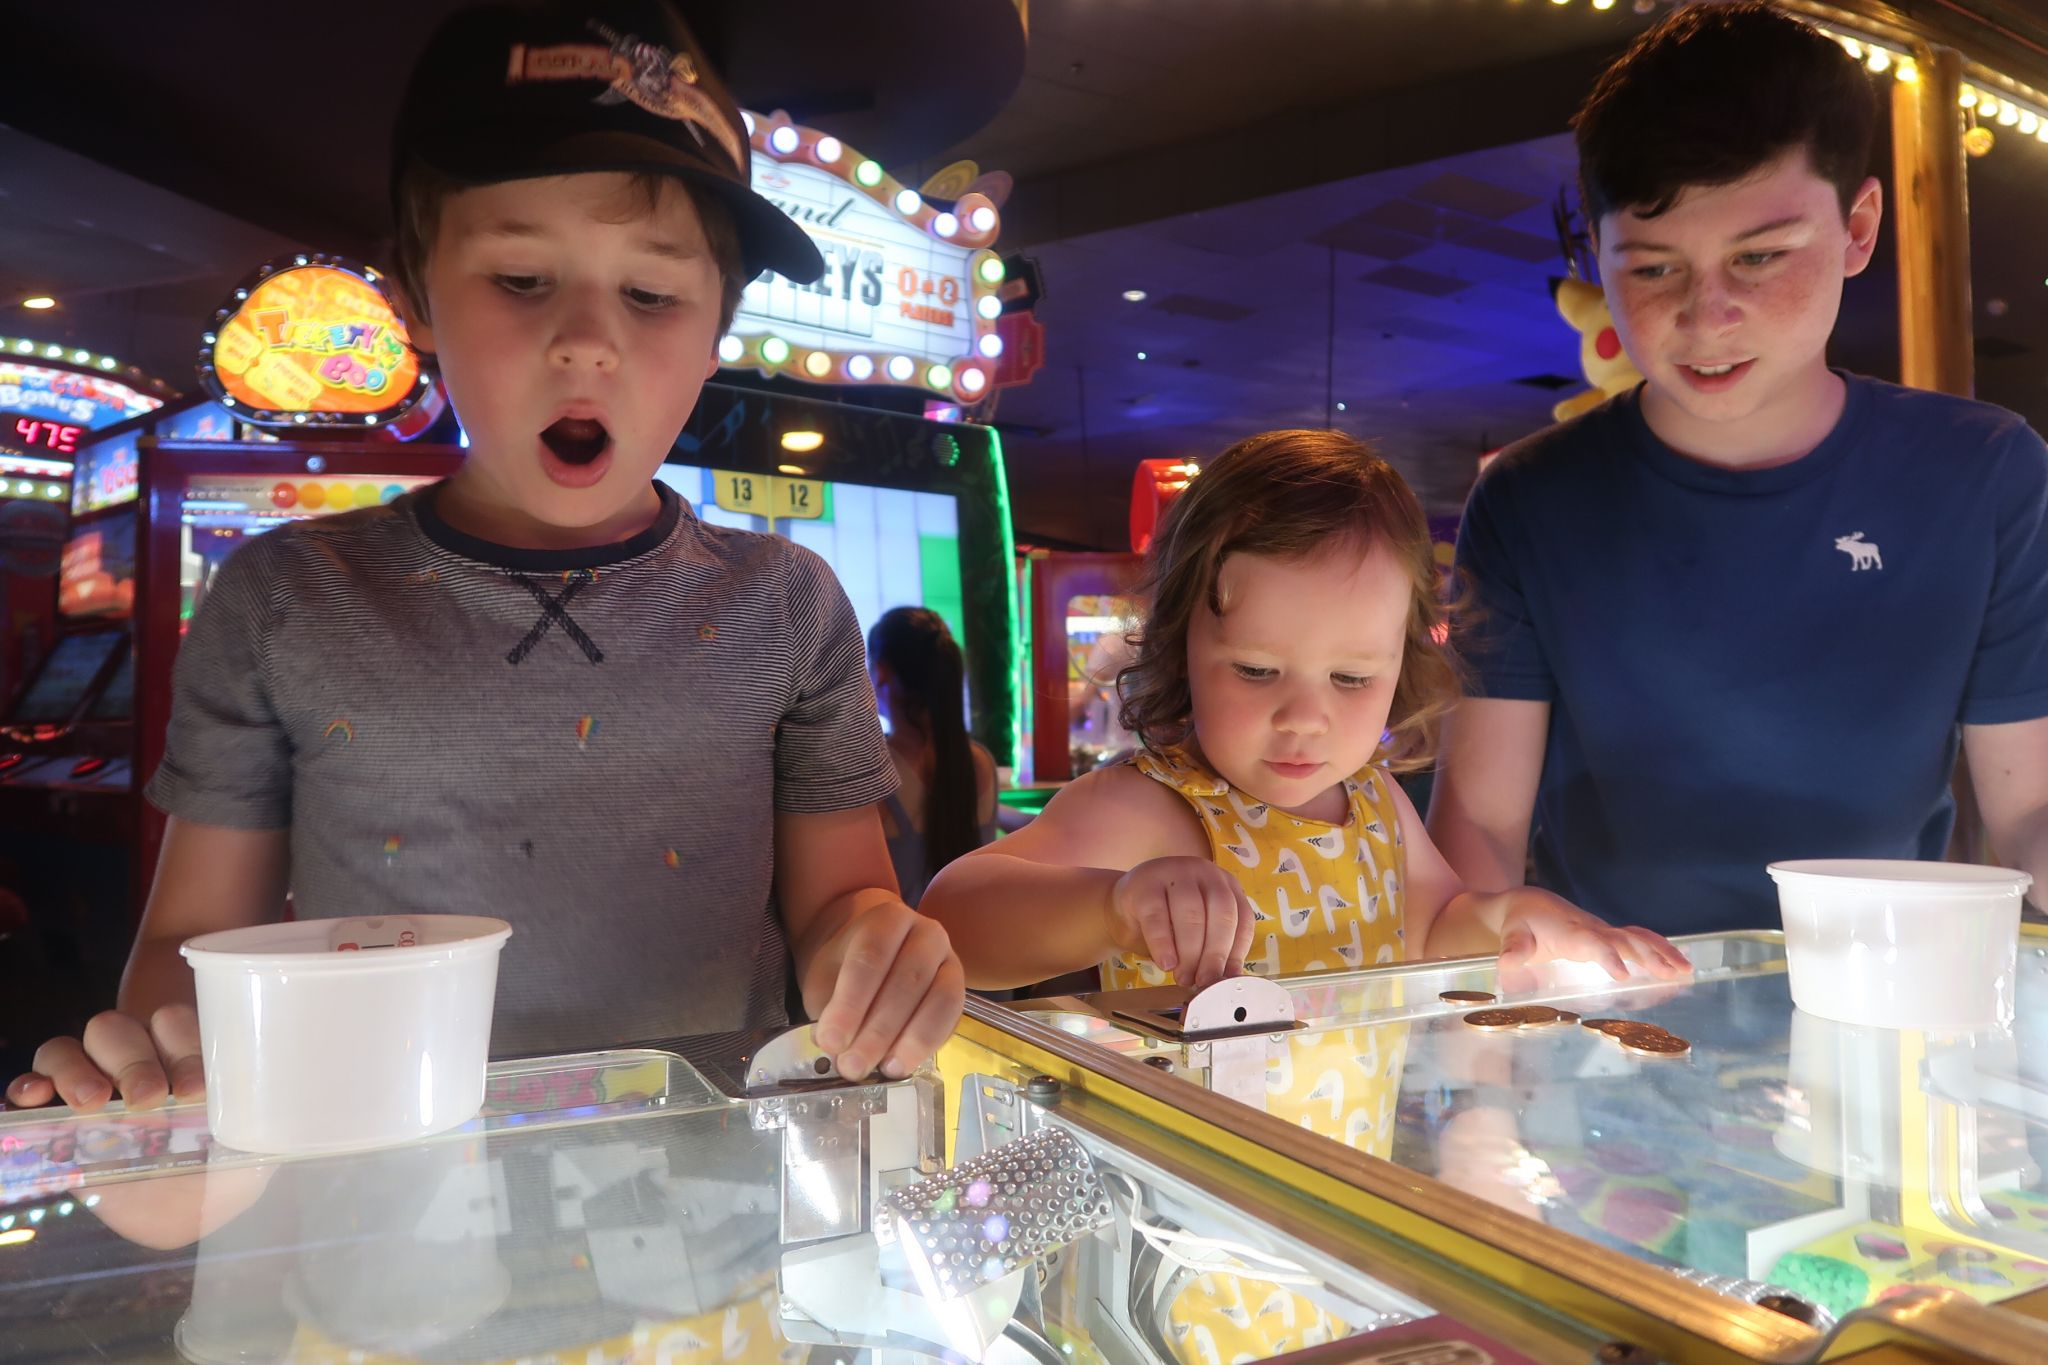 Two children playing at an amusement arcade